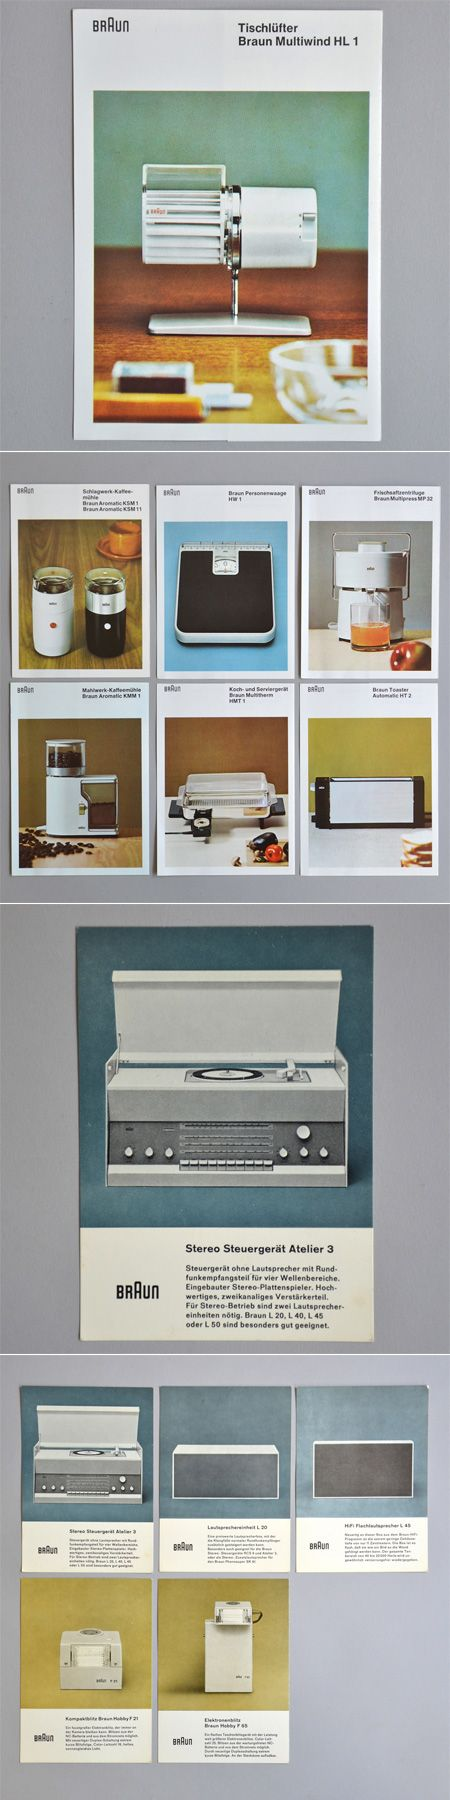 Anything Braun has a wonderful design to it, these are very vintage / Braun Brochures